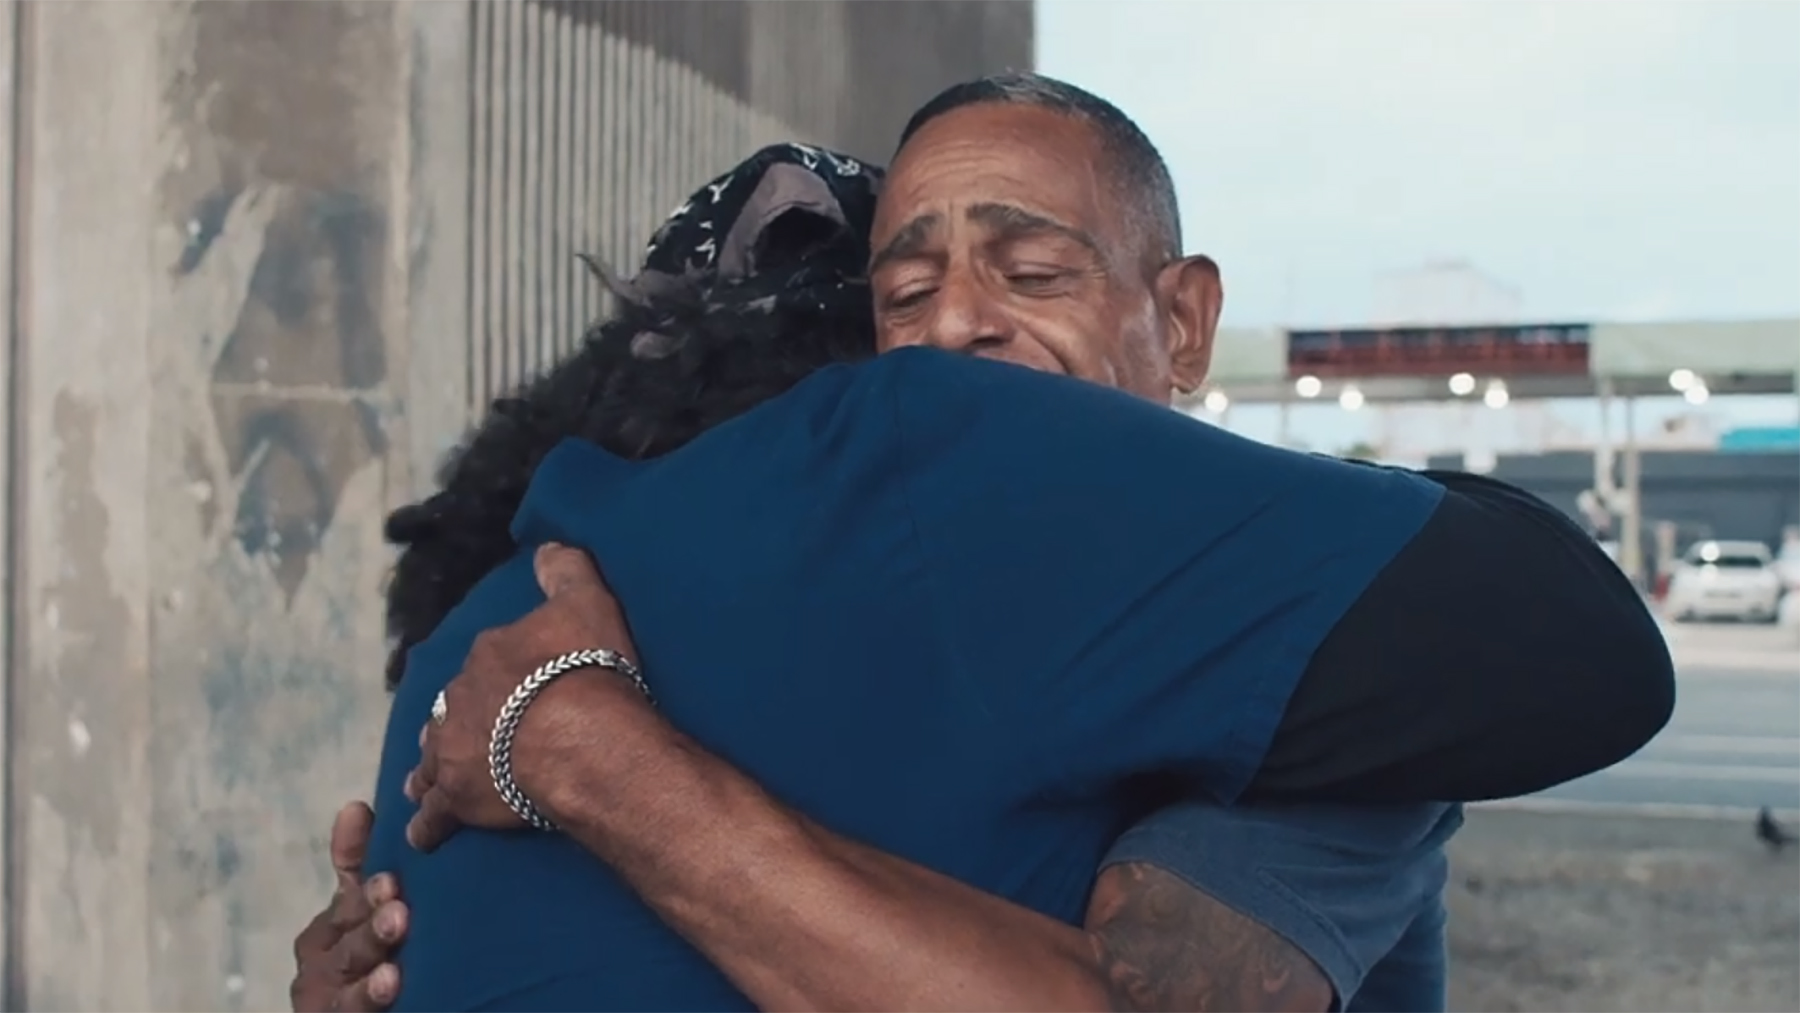 Dr. Chaco Vargas hugs a patient in Puerto Rico while doing outreach earlier this year. Vargas and many other health providers are working to connect those in recovery from opioid addiction with services and resources as many of them continue to rebuild their lives after Hurricane Maria. (Bimarian Films)